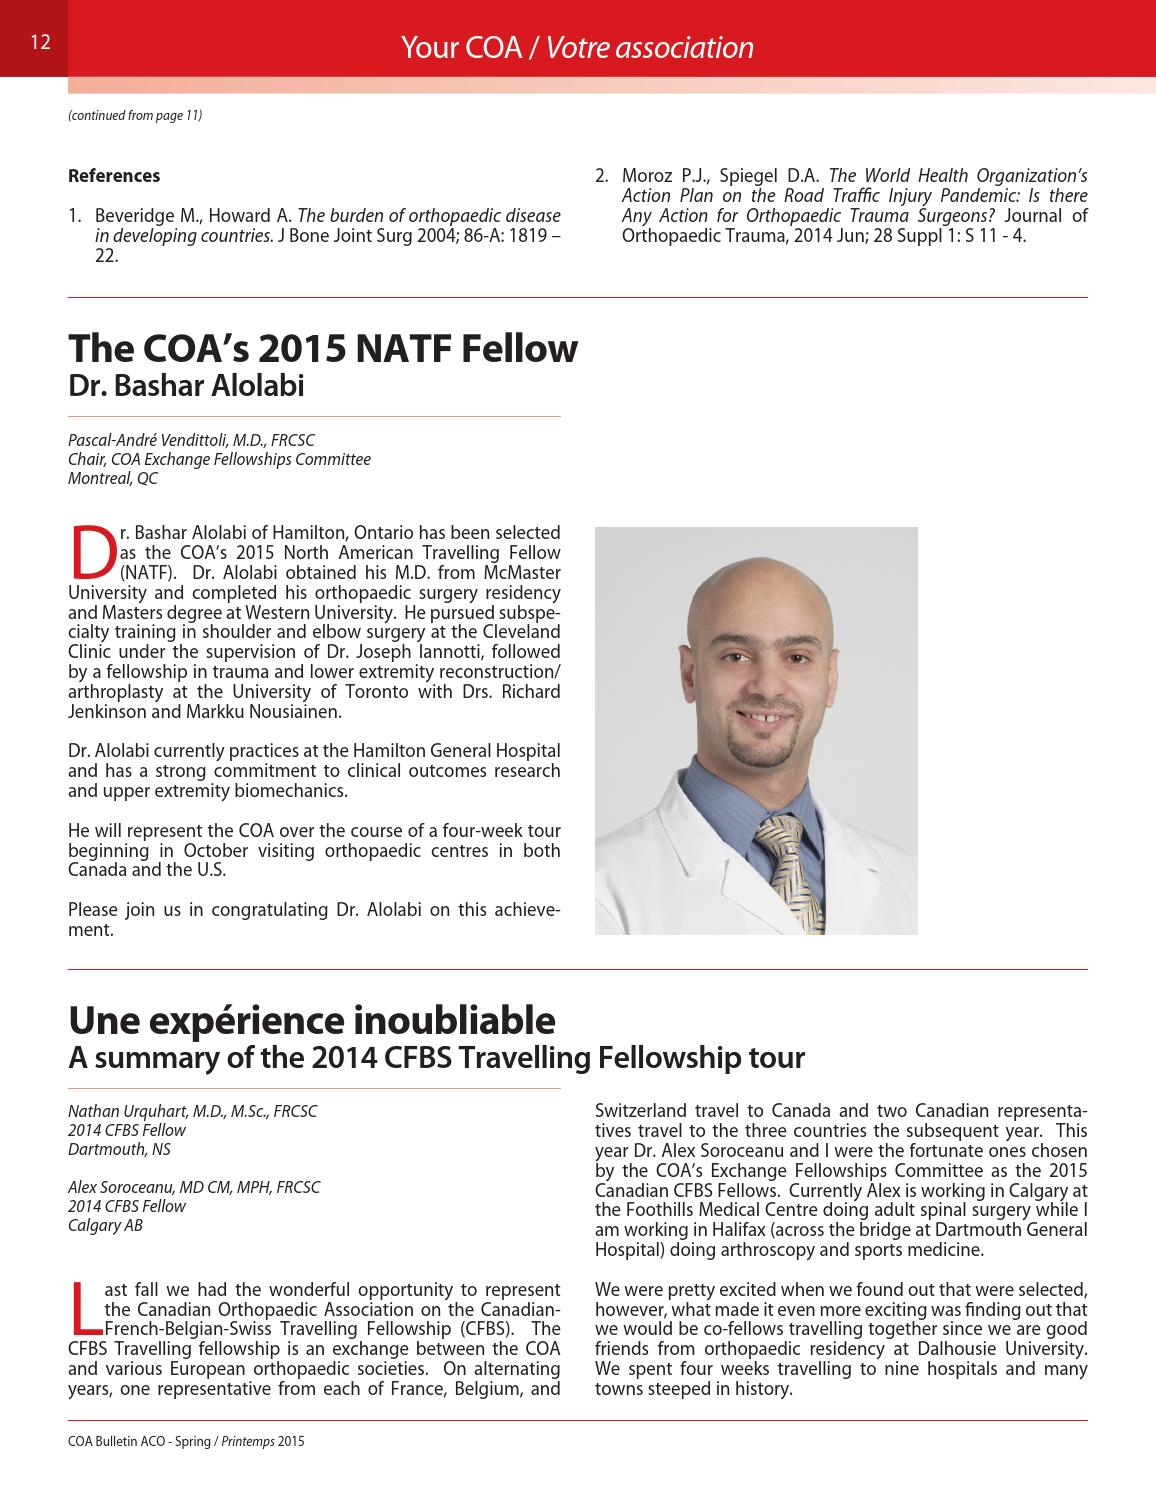 Spring 2015 COA Bulletin #108 by Canadian Orthopaedic Asssociation